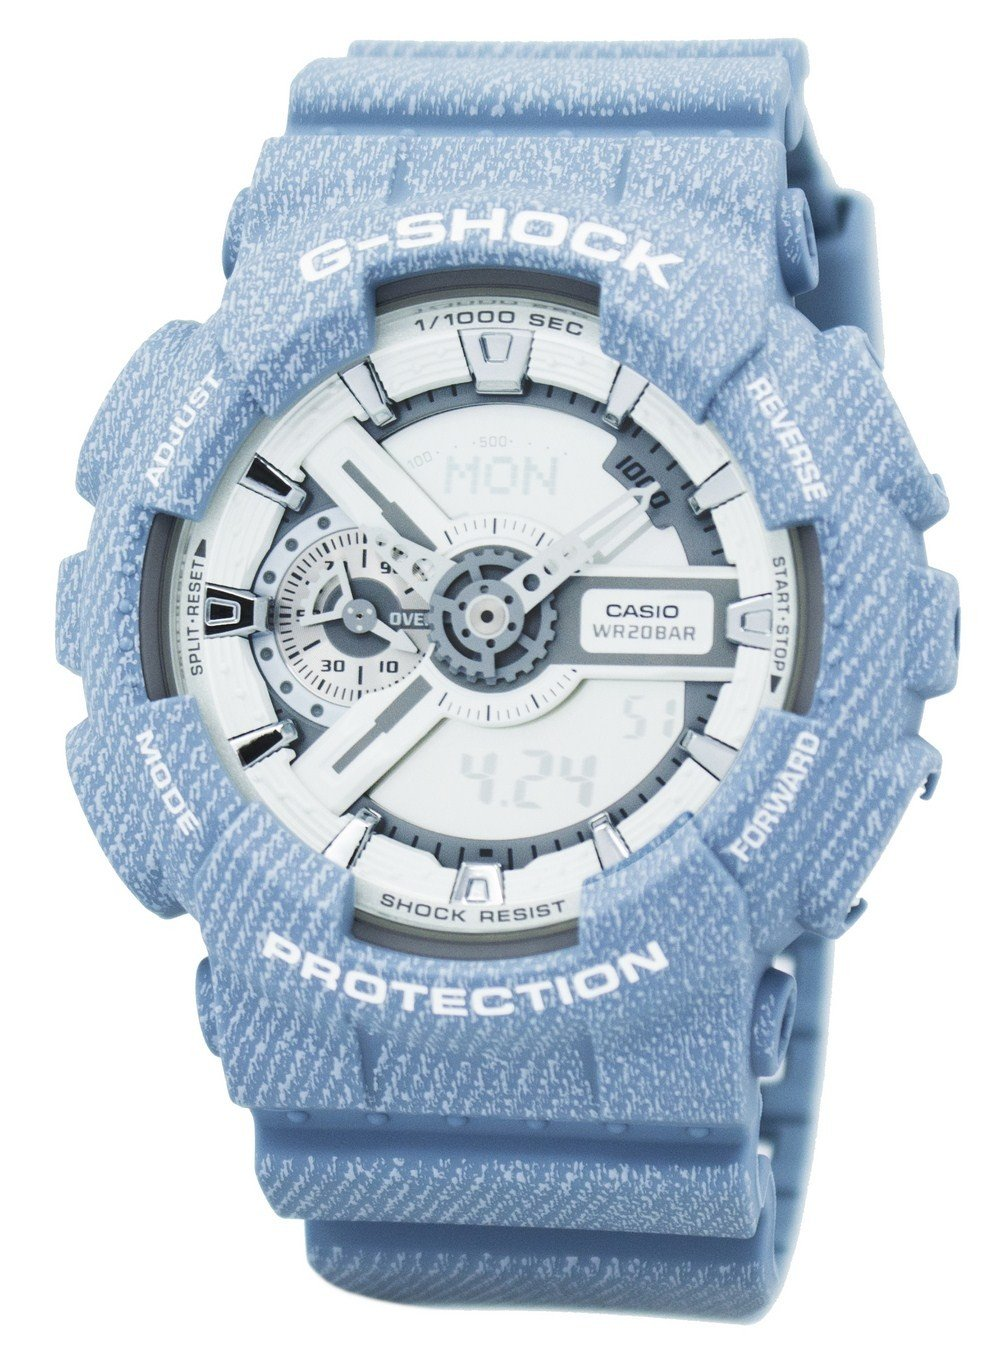 Casio G-Shock Analog Digital GA-110DC-2A7 Men's Watch